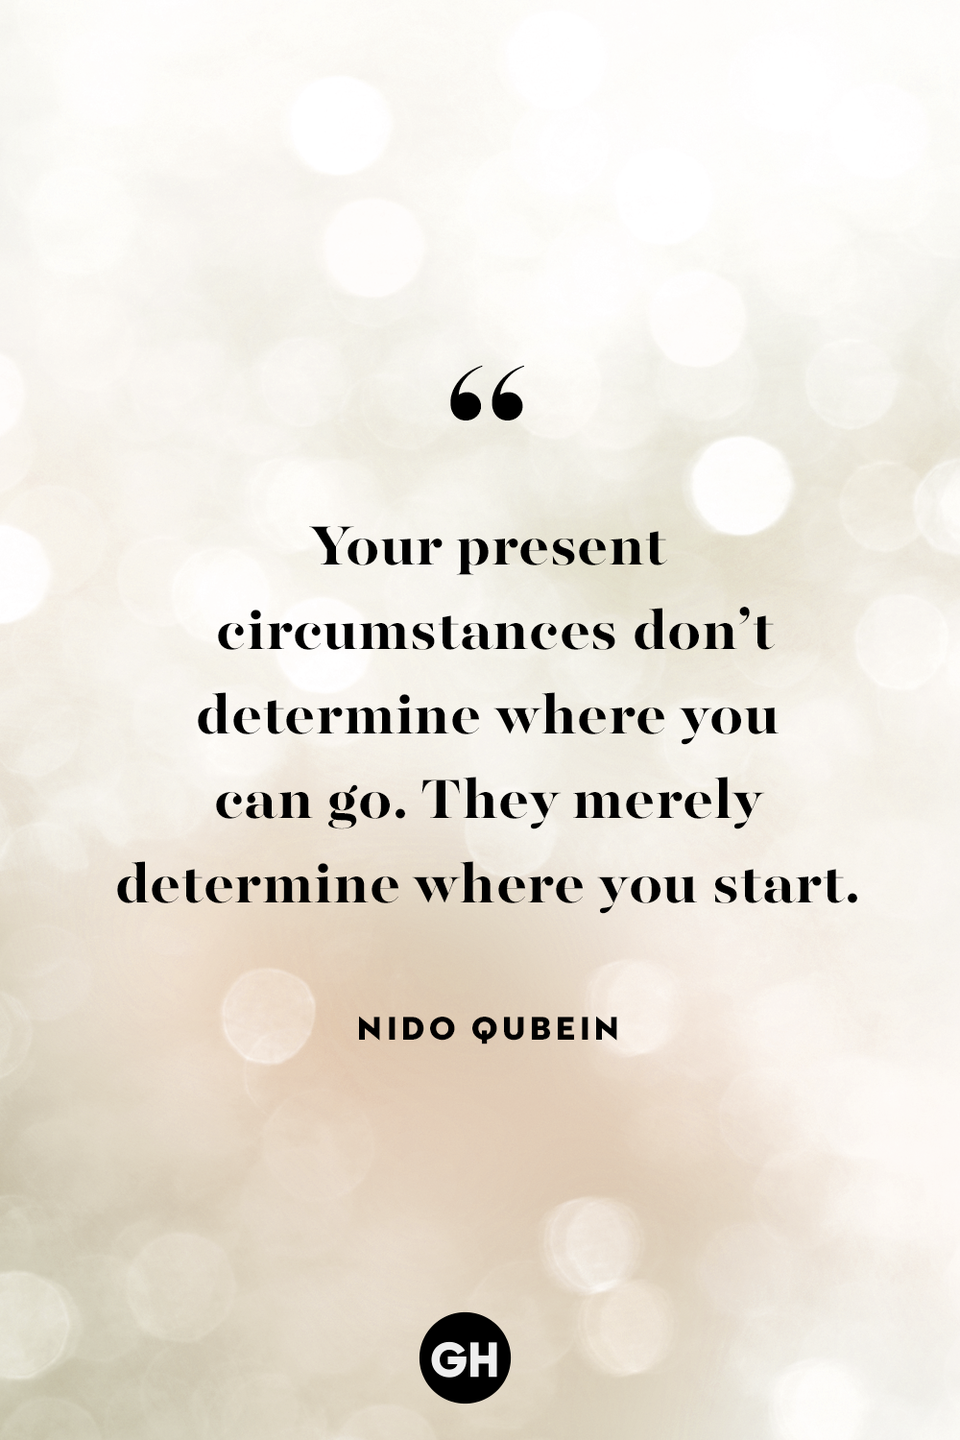 <p>Your present circumstances don't determine where you can go. They merely determine where you start.</p>